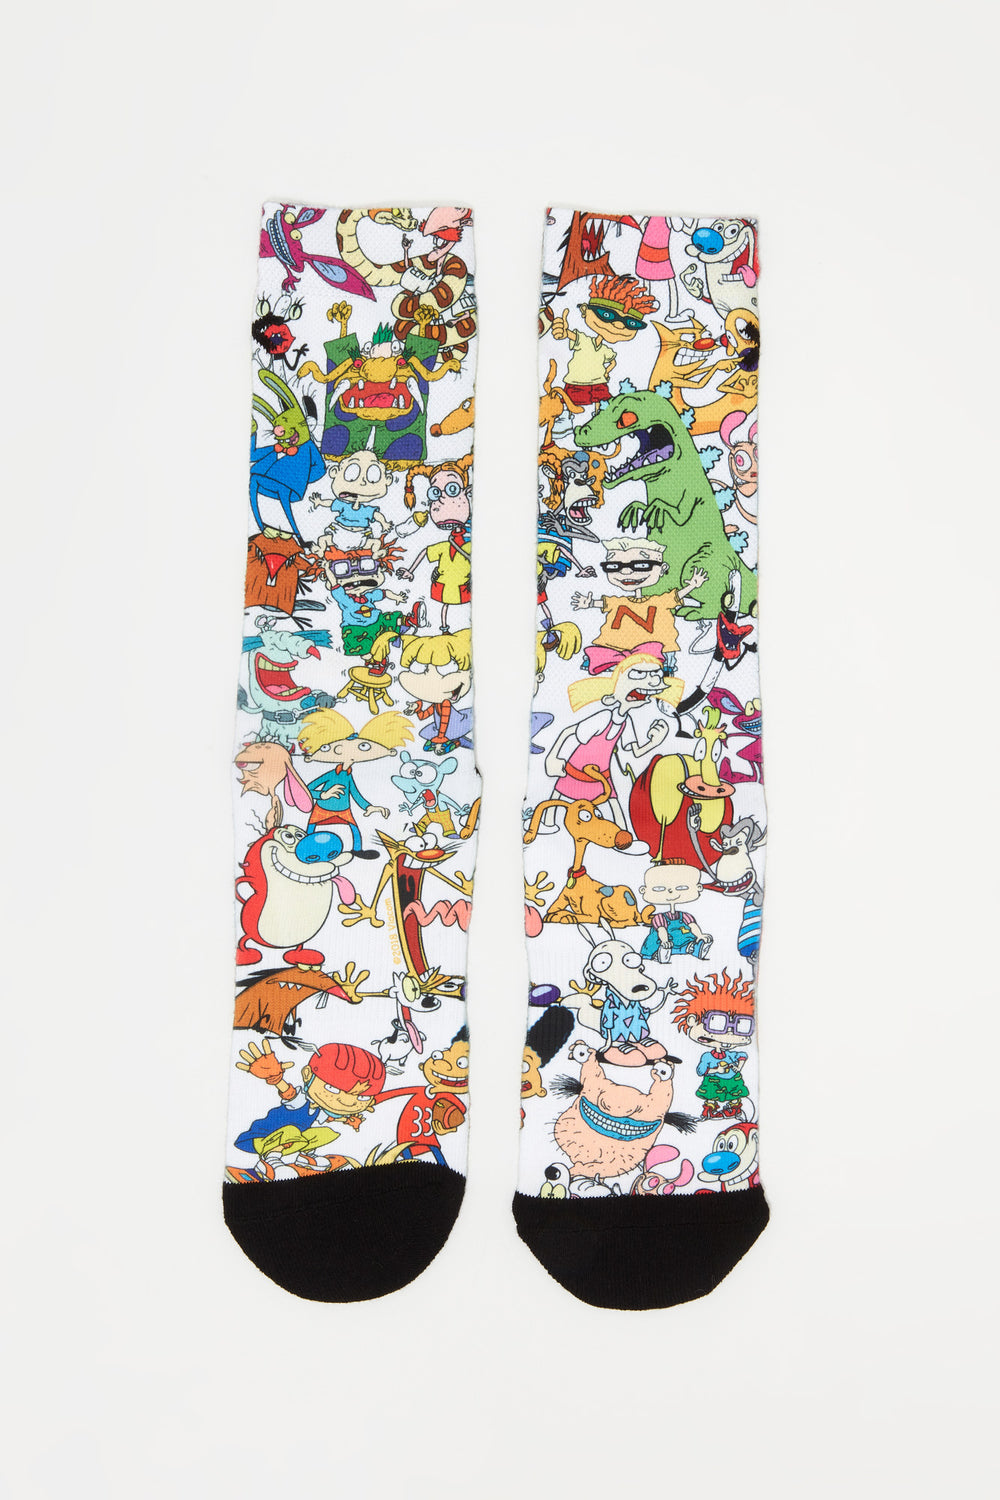 Chaussettes Imprimées Nickelodeon Odd Sox Homme Multi